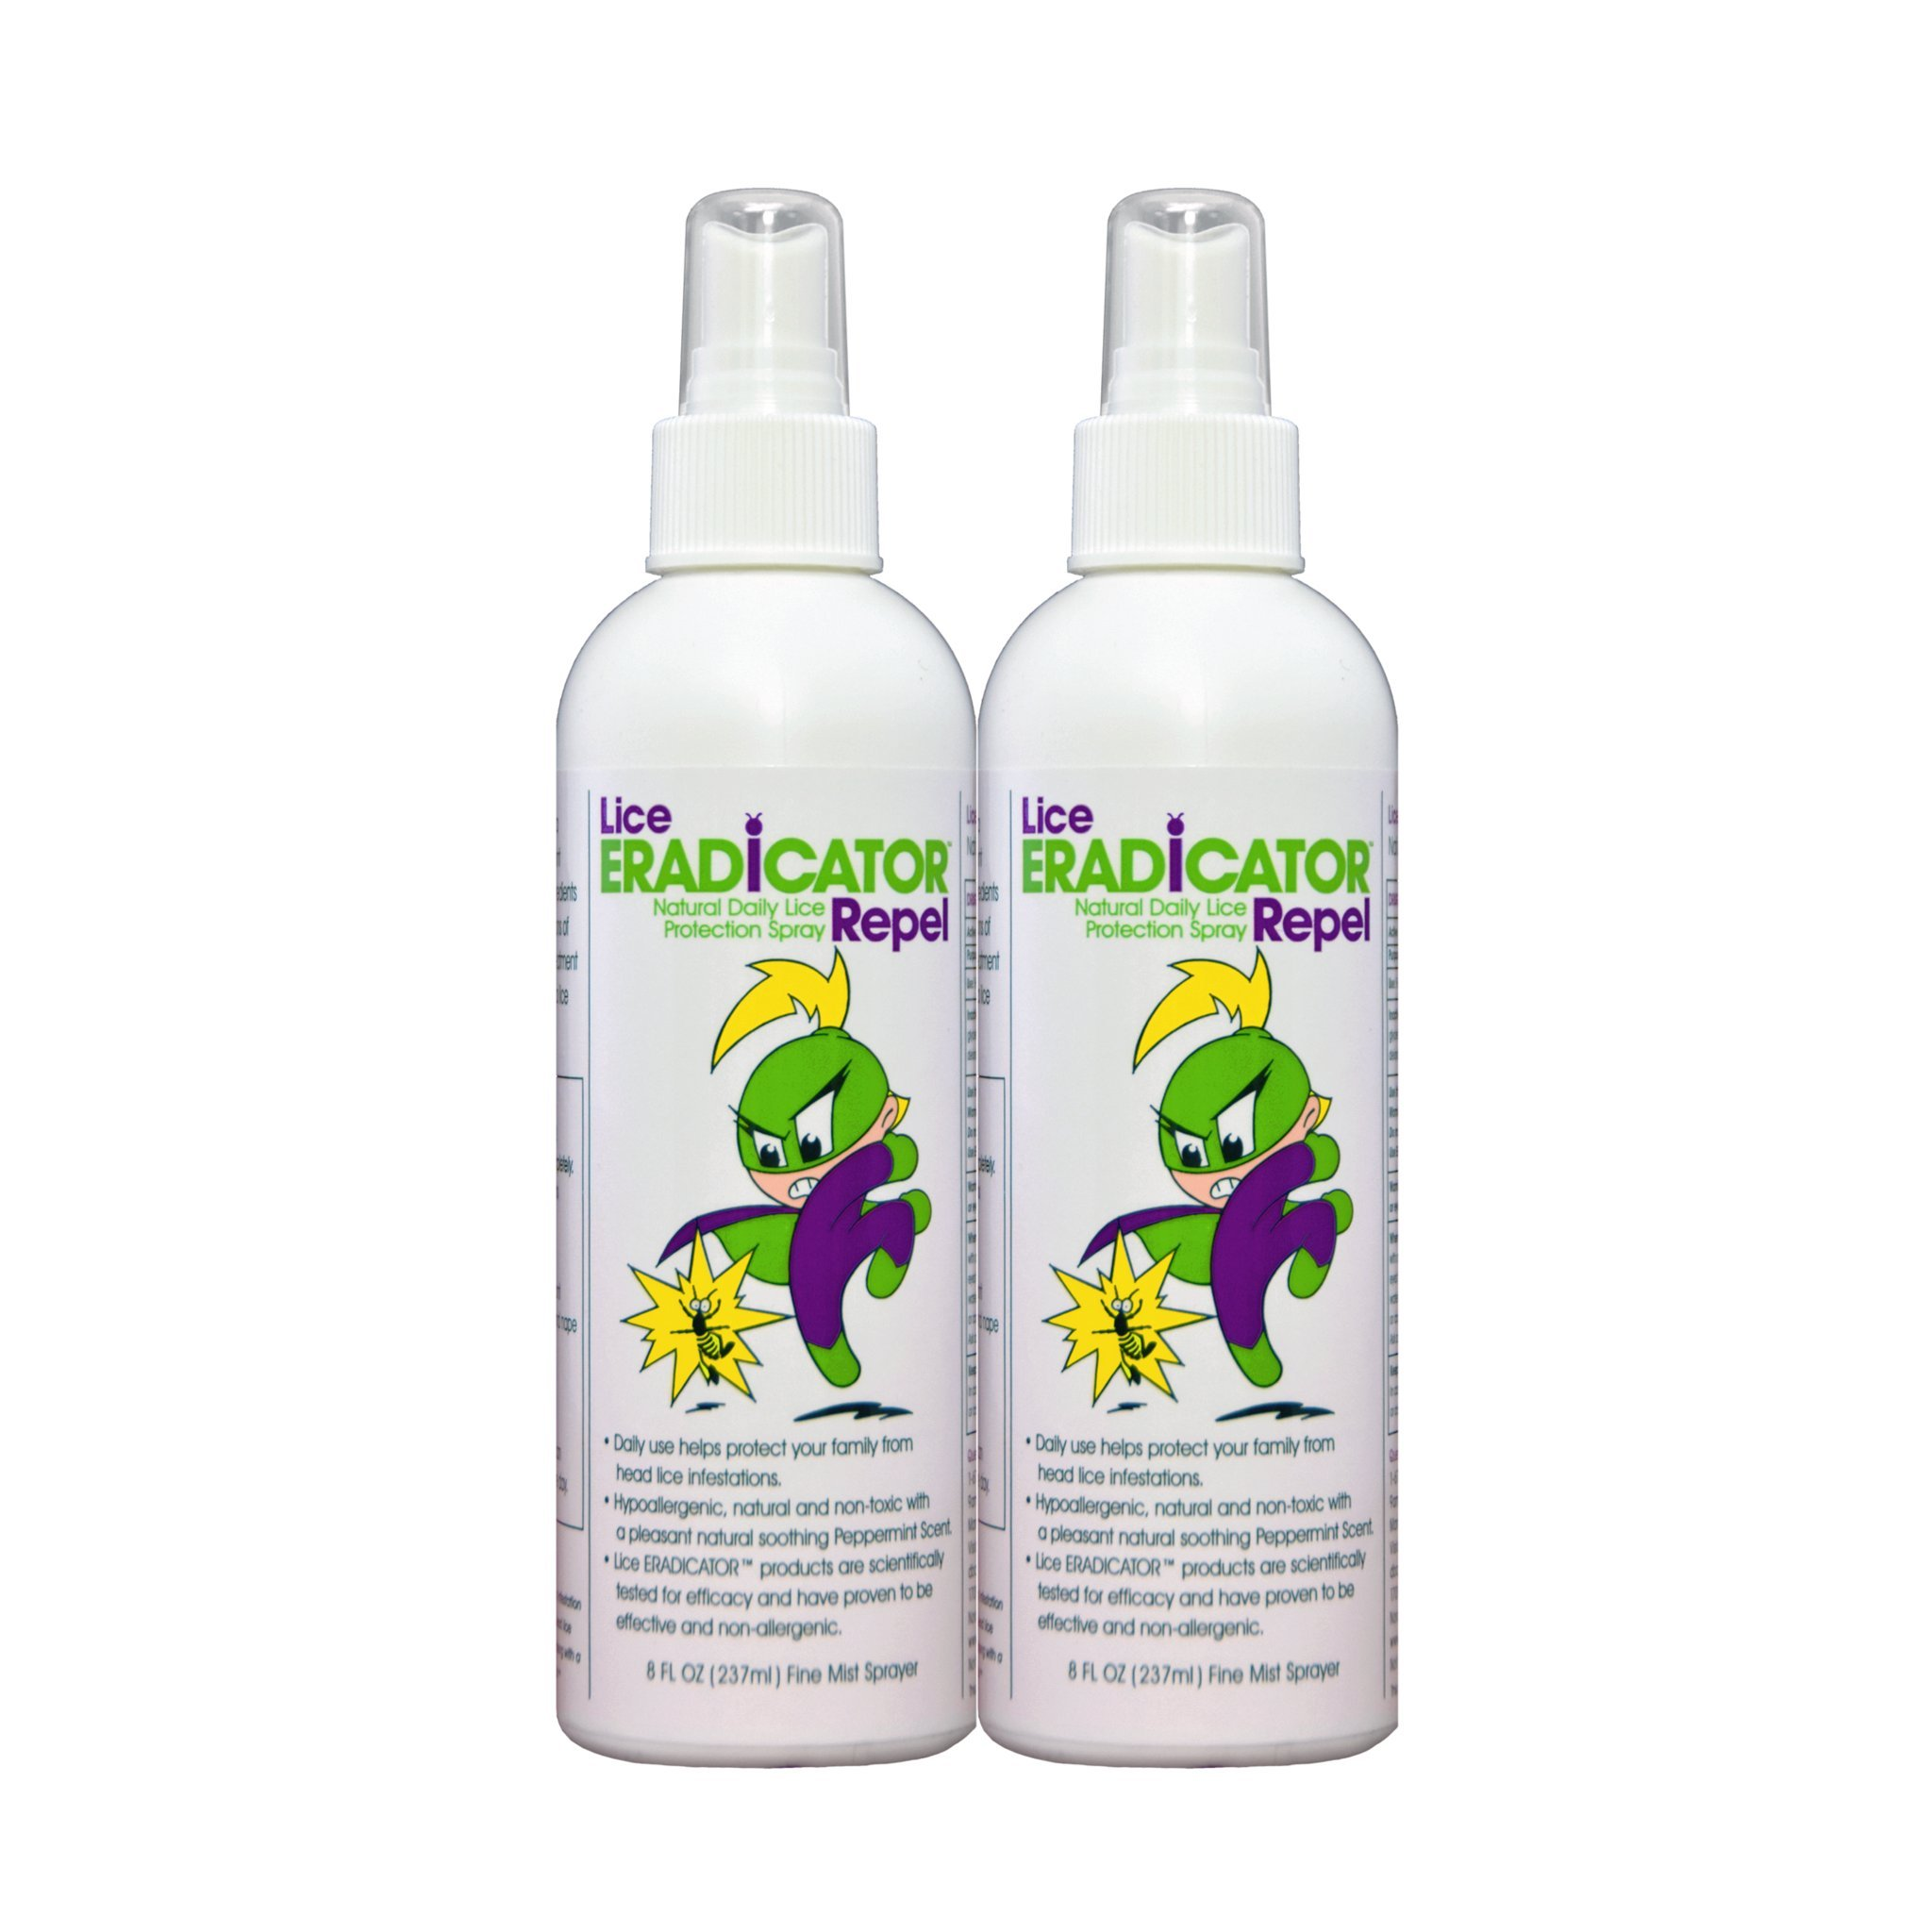 Lice ERADICATOR Repel Lice Repellent Spray for Daily Prevention and Protection / Natural, Non-Toxic, Homeopathic, Peppermint Formula / 8 Ounce 2 Pack